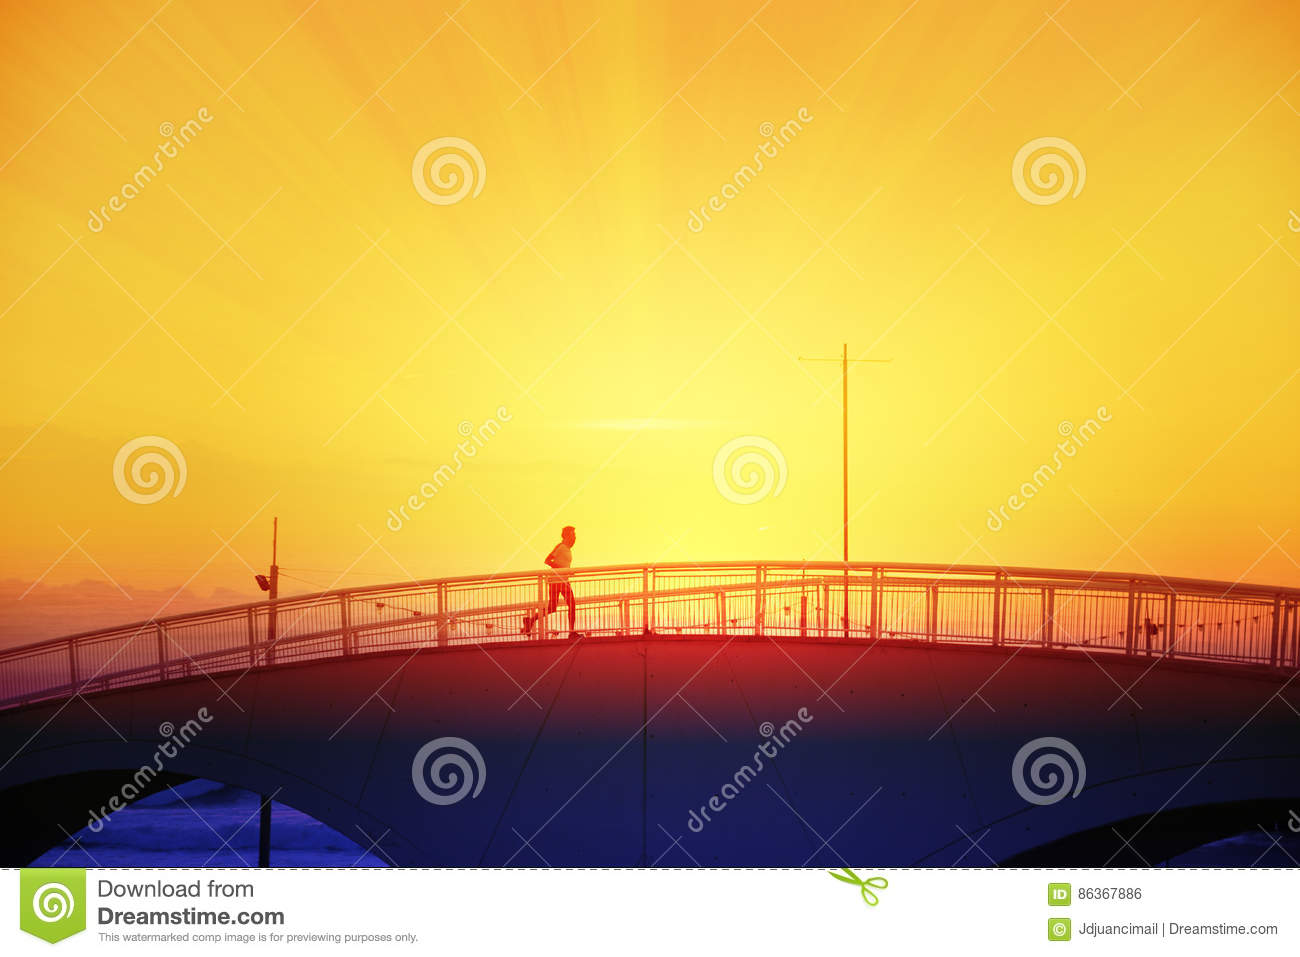 Man running crossing a bridge next to the beack at sunset.